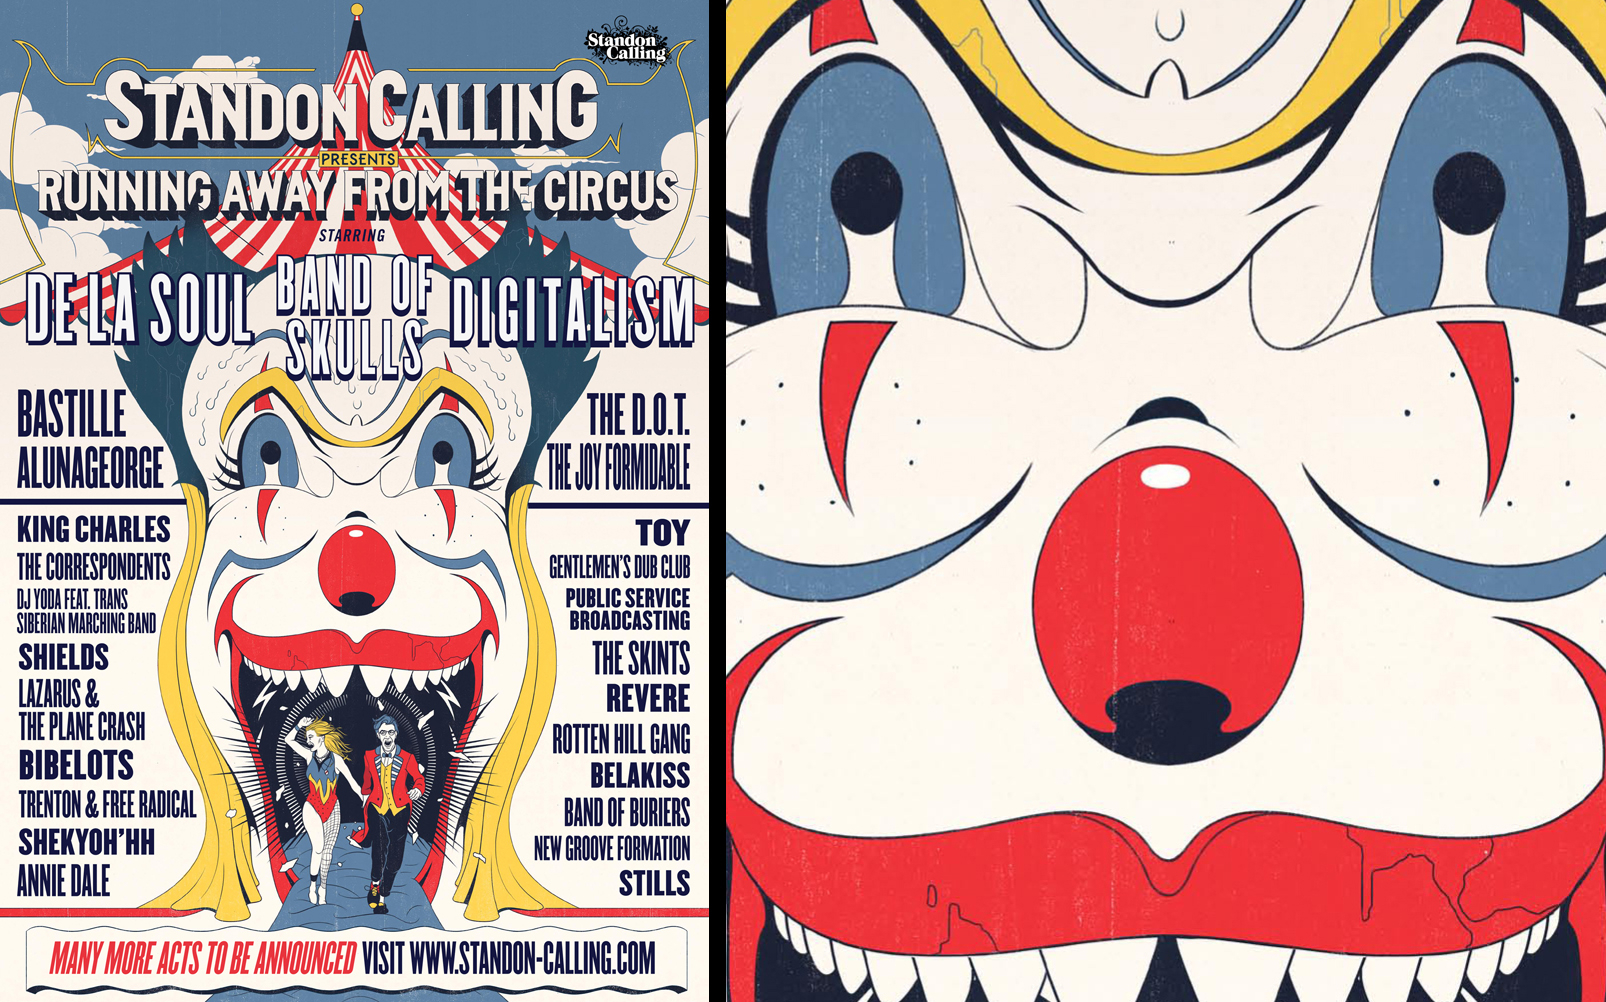 Standon Calling 2013 Poster